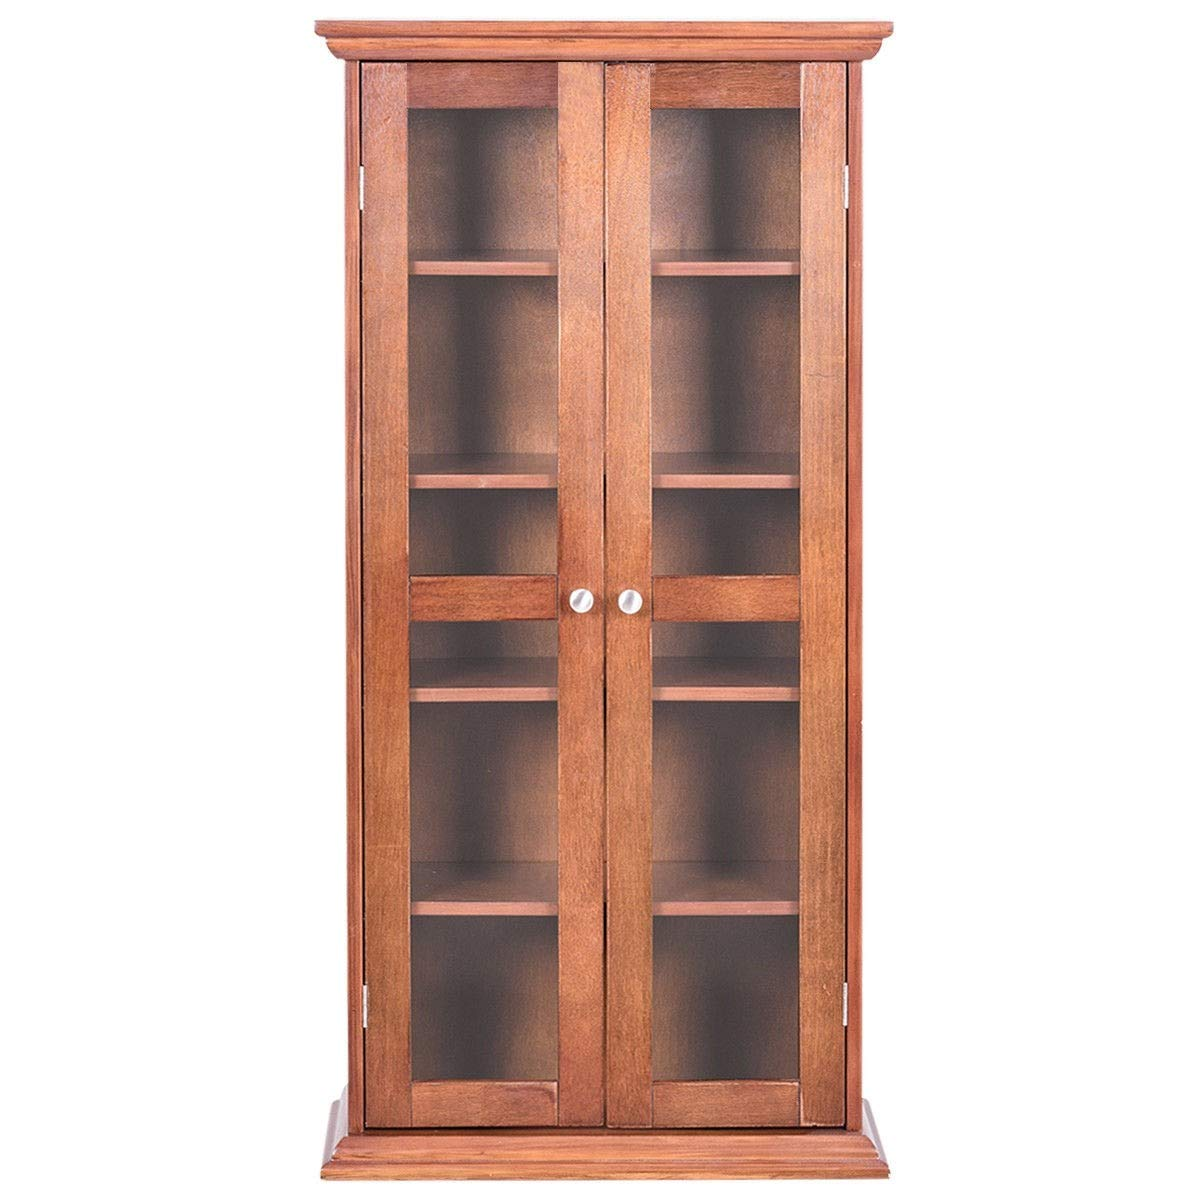 King 77777 Wood Media Storage Cabinet CD Shelves with Tower Glass Doors Comfortable Modern Elegant Durable Simple Style by King 77777